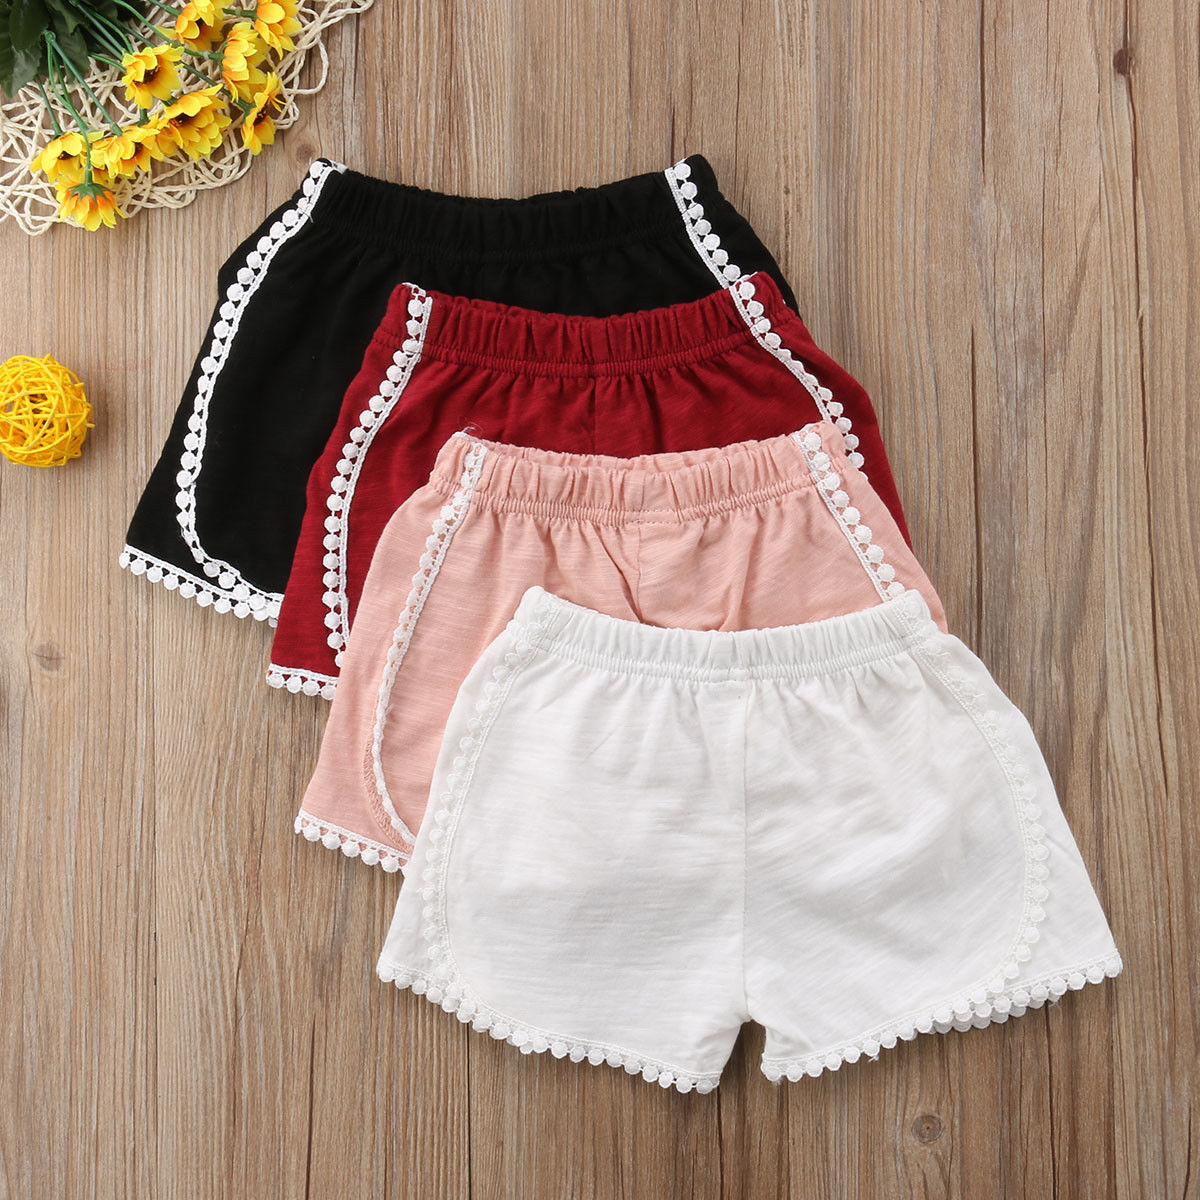 Pudcoco Girl Pants Newborn Baby Girl Kids Harem Pants   Shorts   Bottoms PP Bloomer Panties 18M-4T